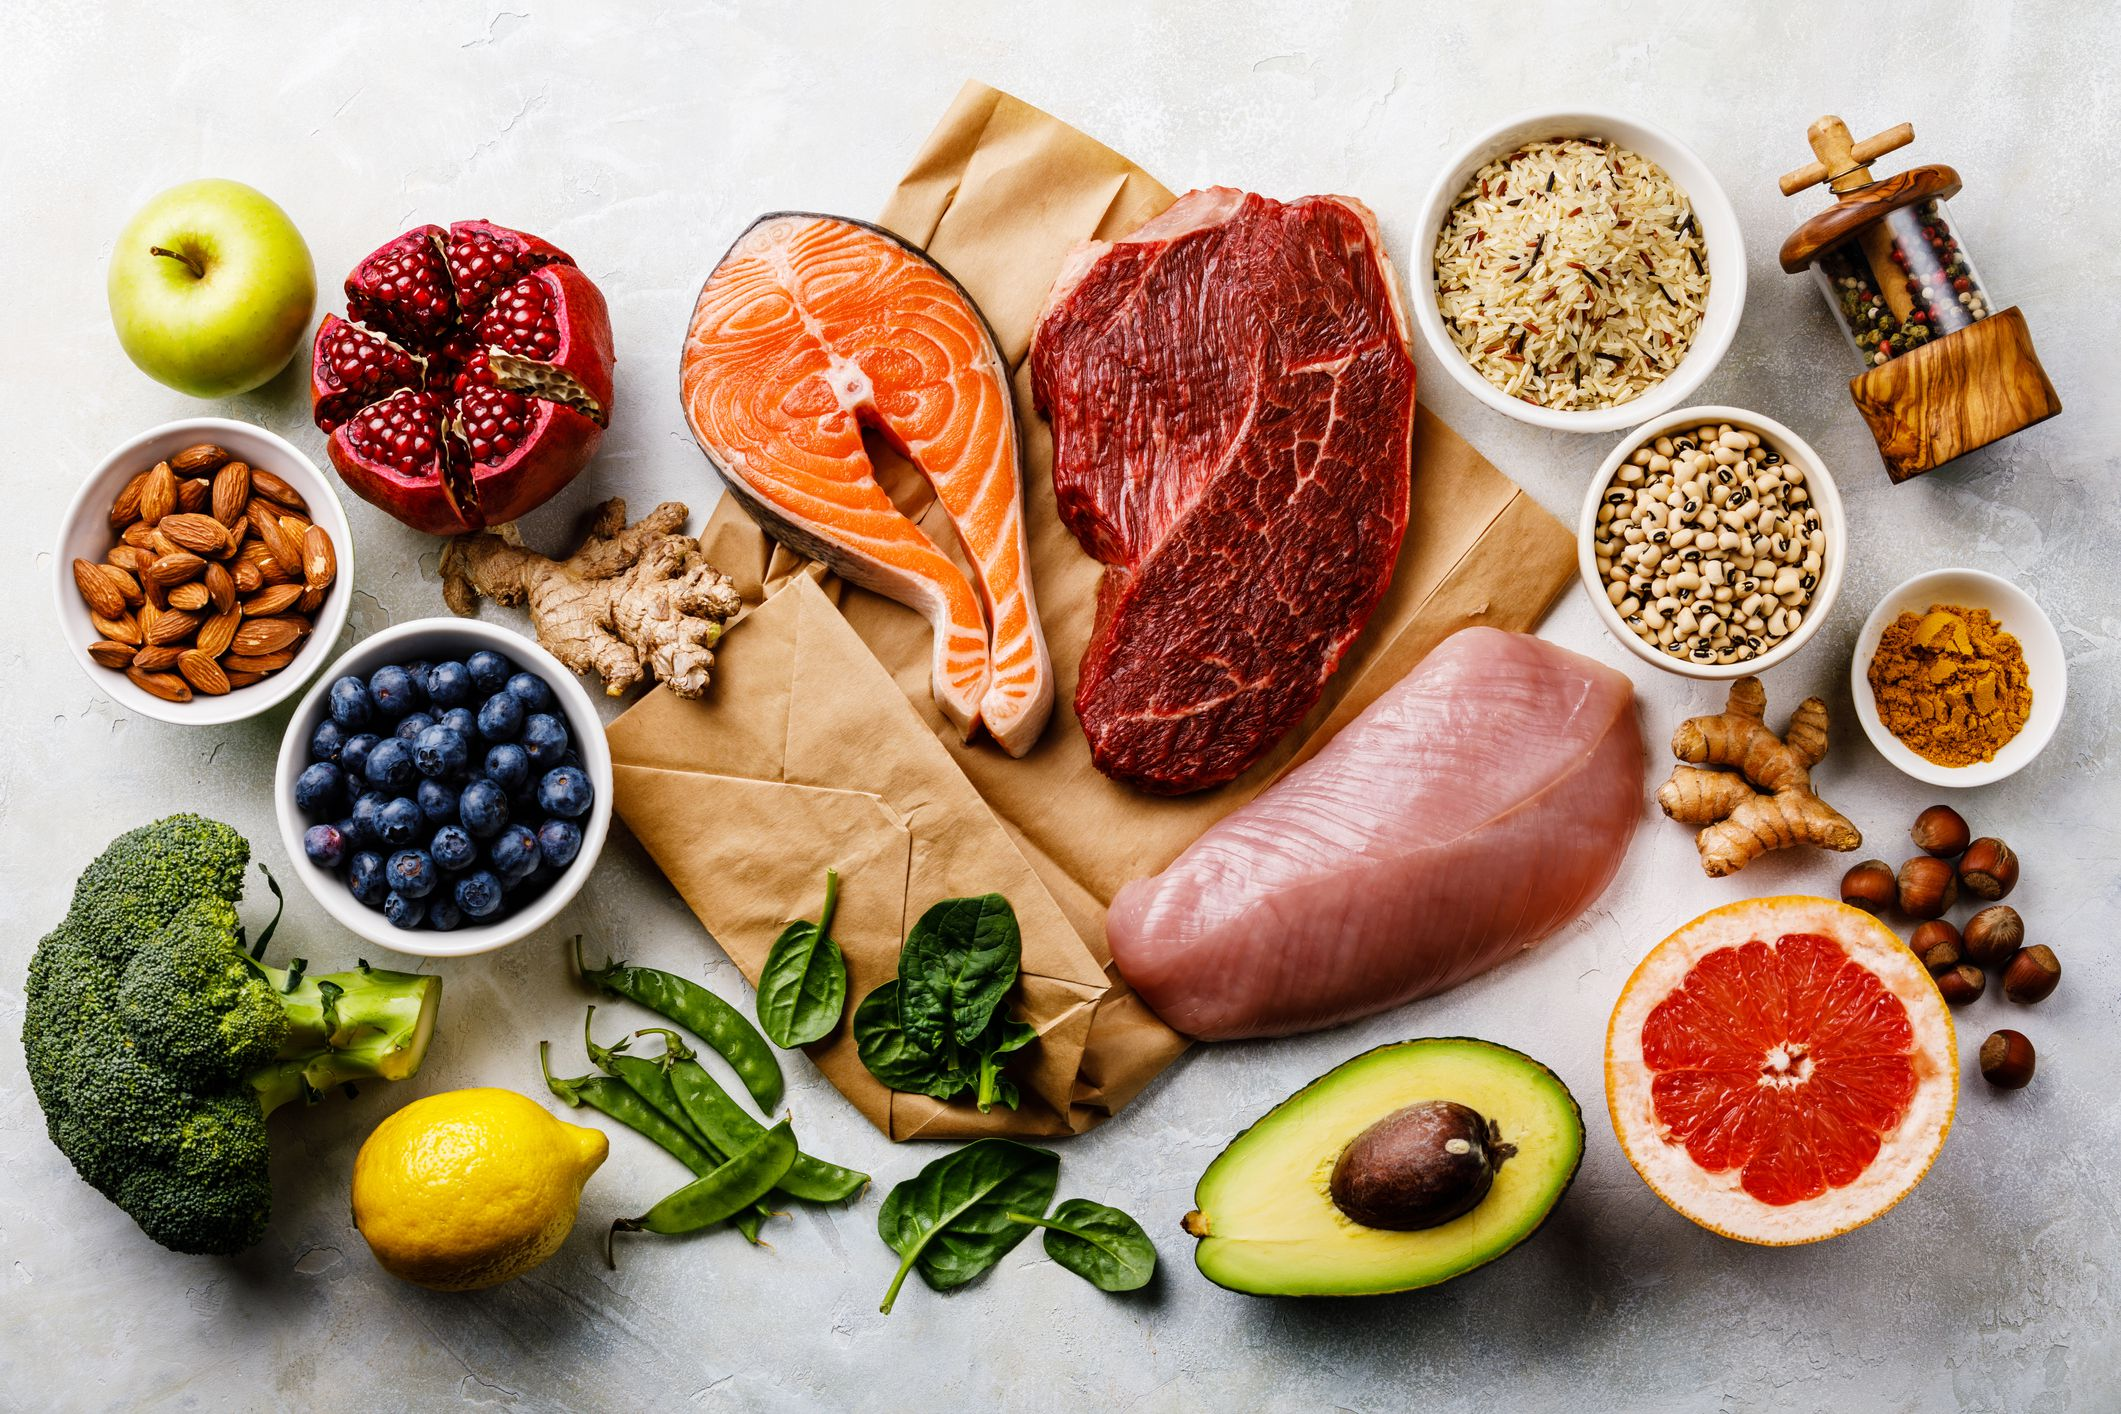 An Overview of Nutrition for a Better Diet